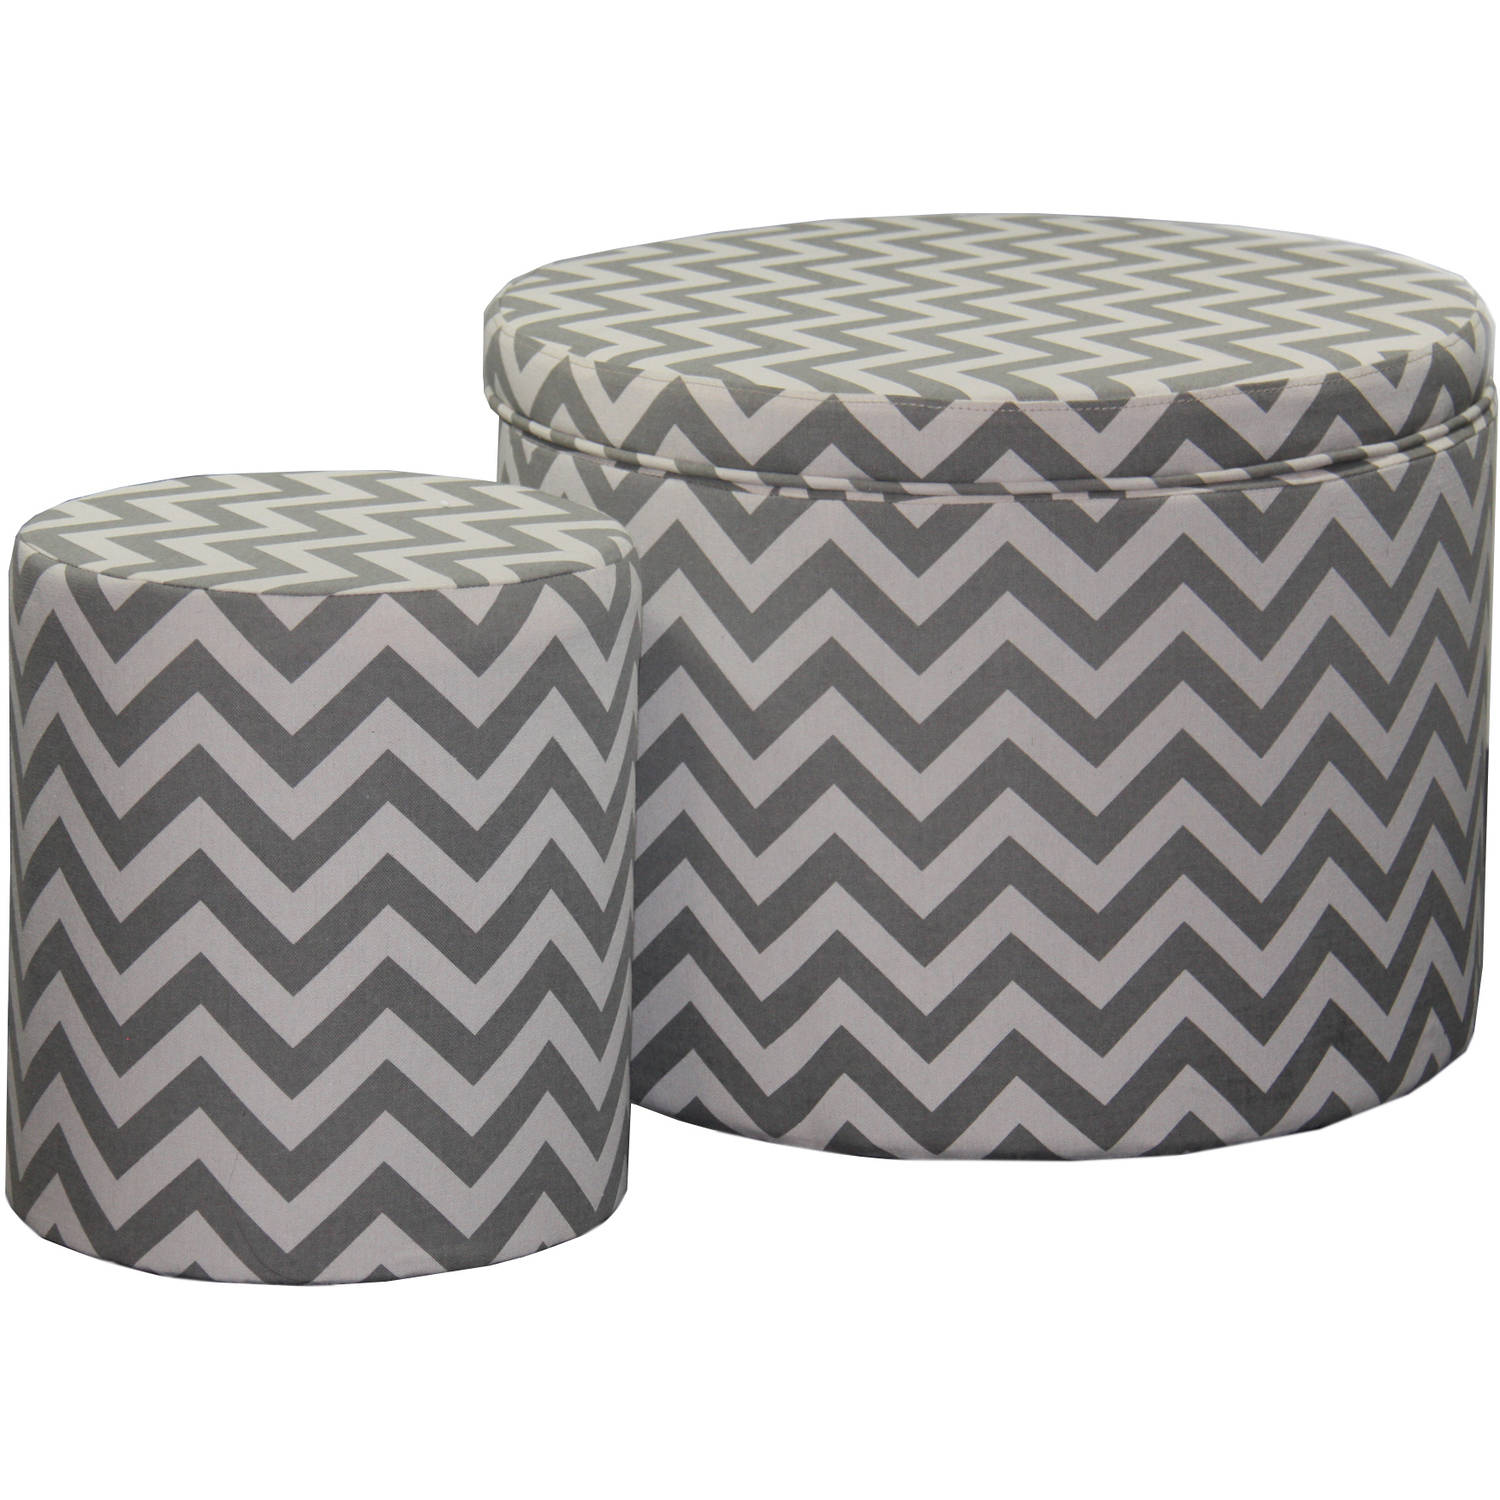 Admirable 17 35 Chevron Storage Ottoman Plus Extra Seating Pabps2019 Chair Design Images Pabps2019Com